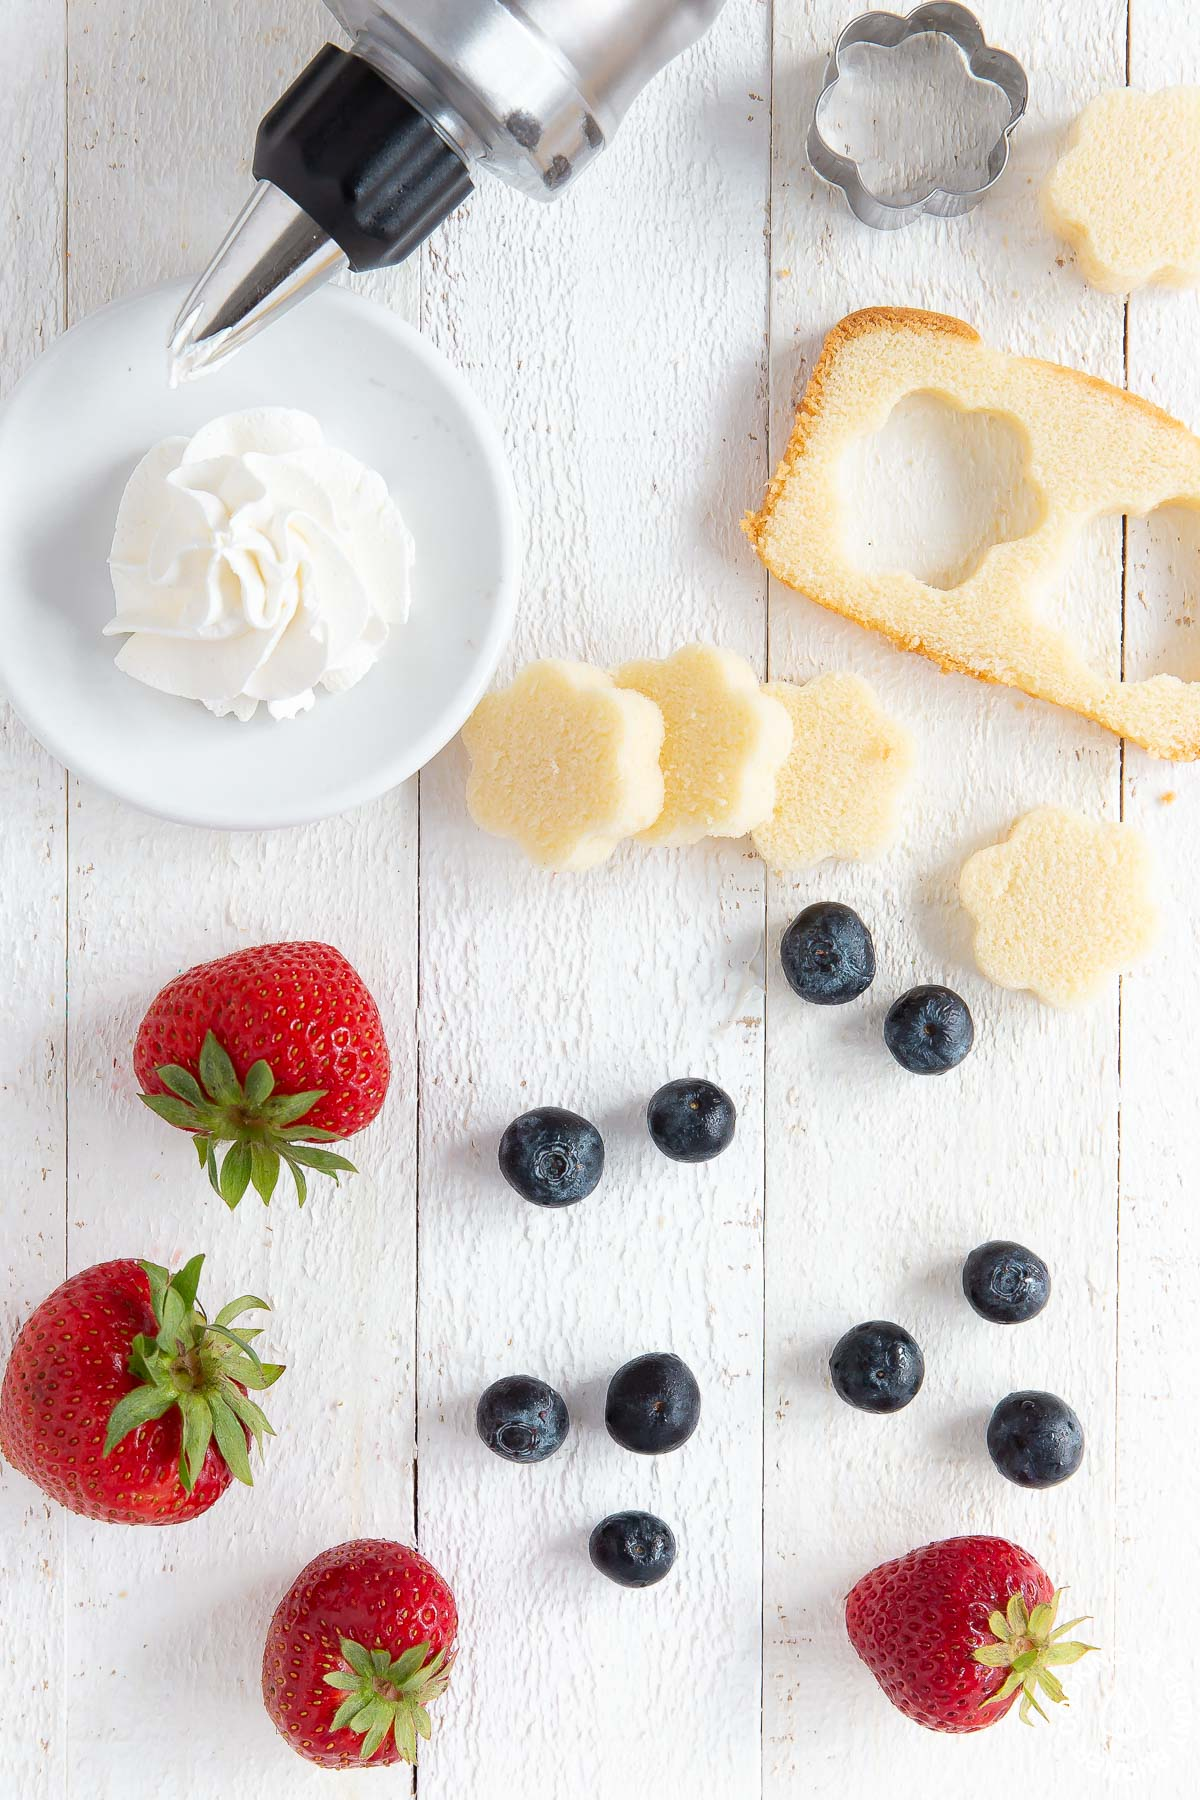 pound cake, cool whip, fresh strawberries and blueberries on a cutting board - overhead view